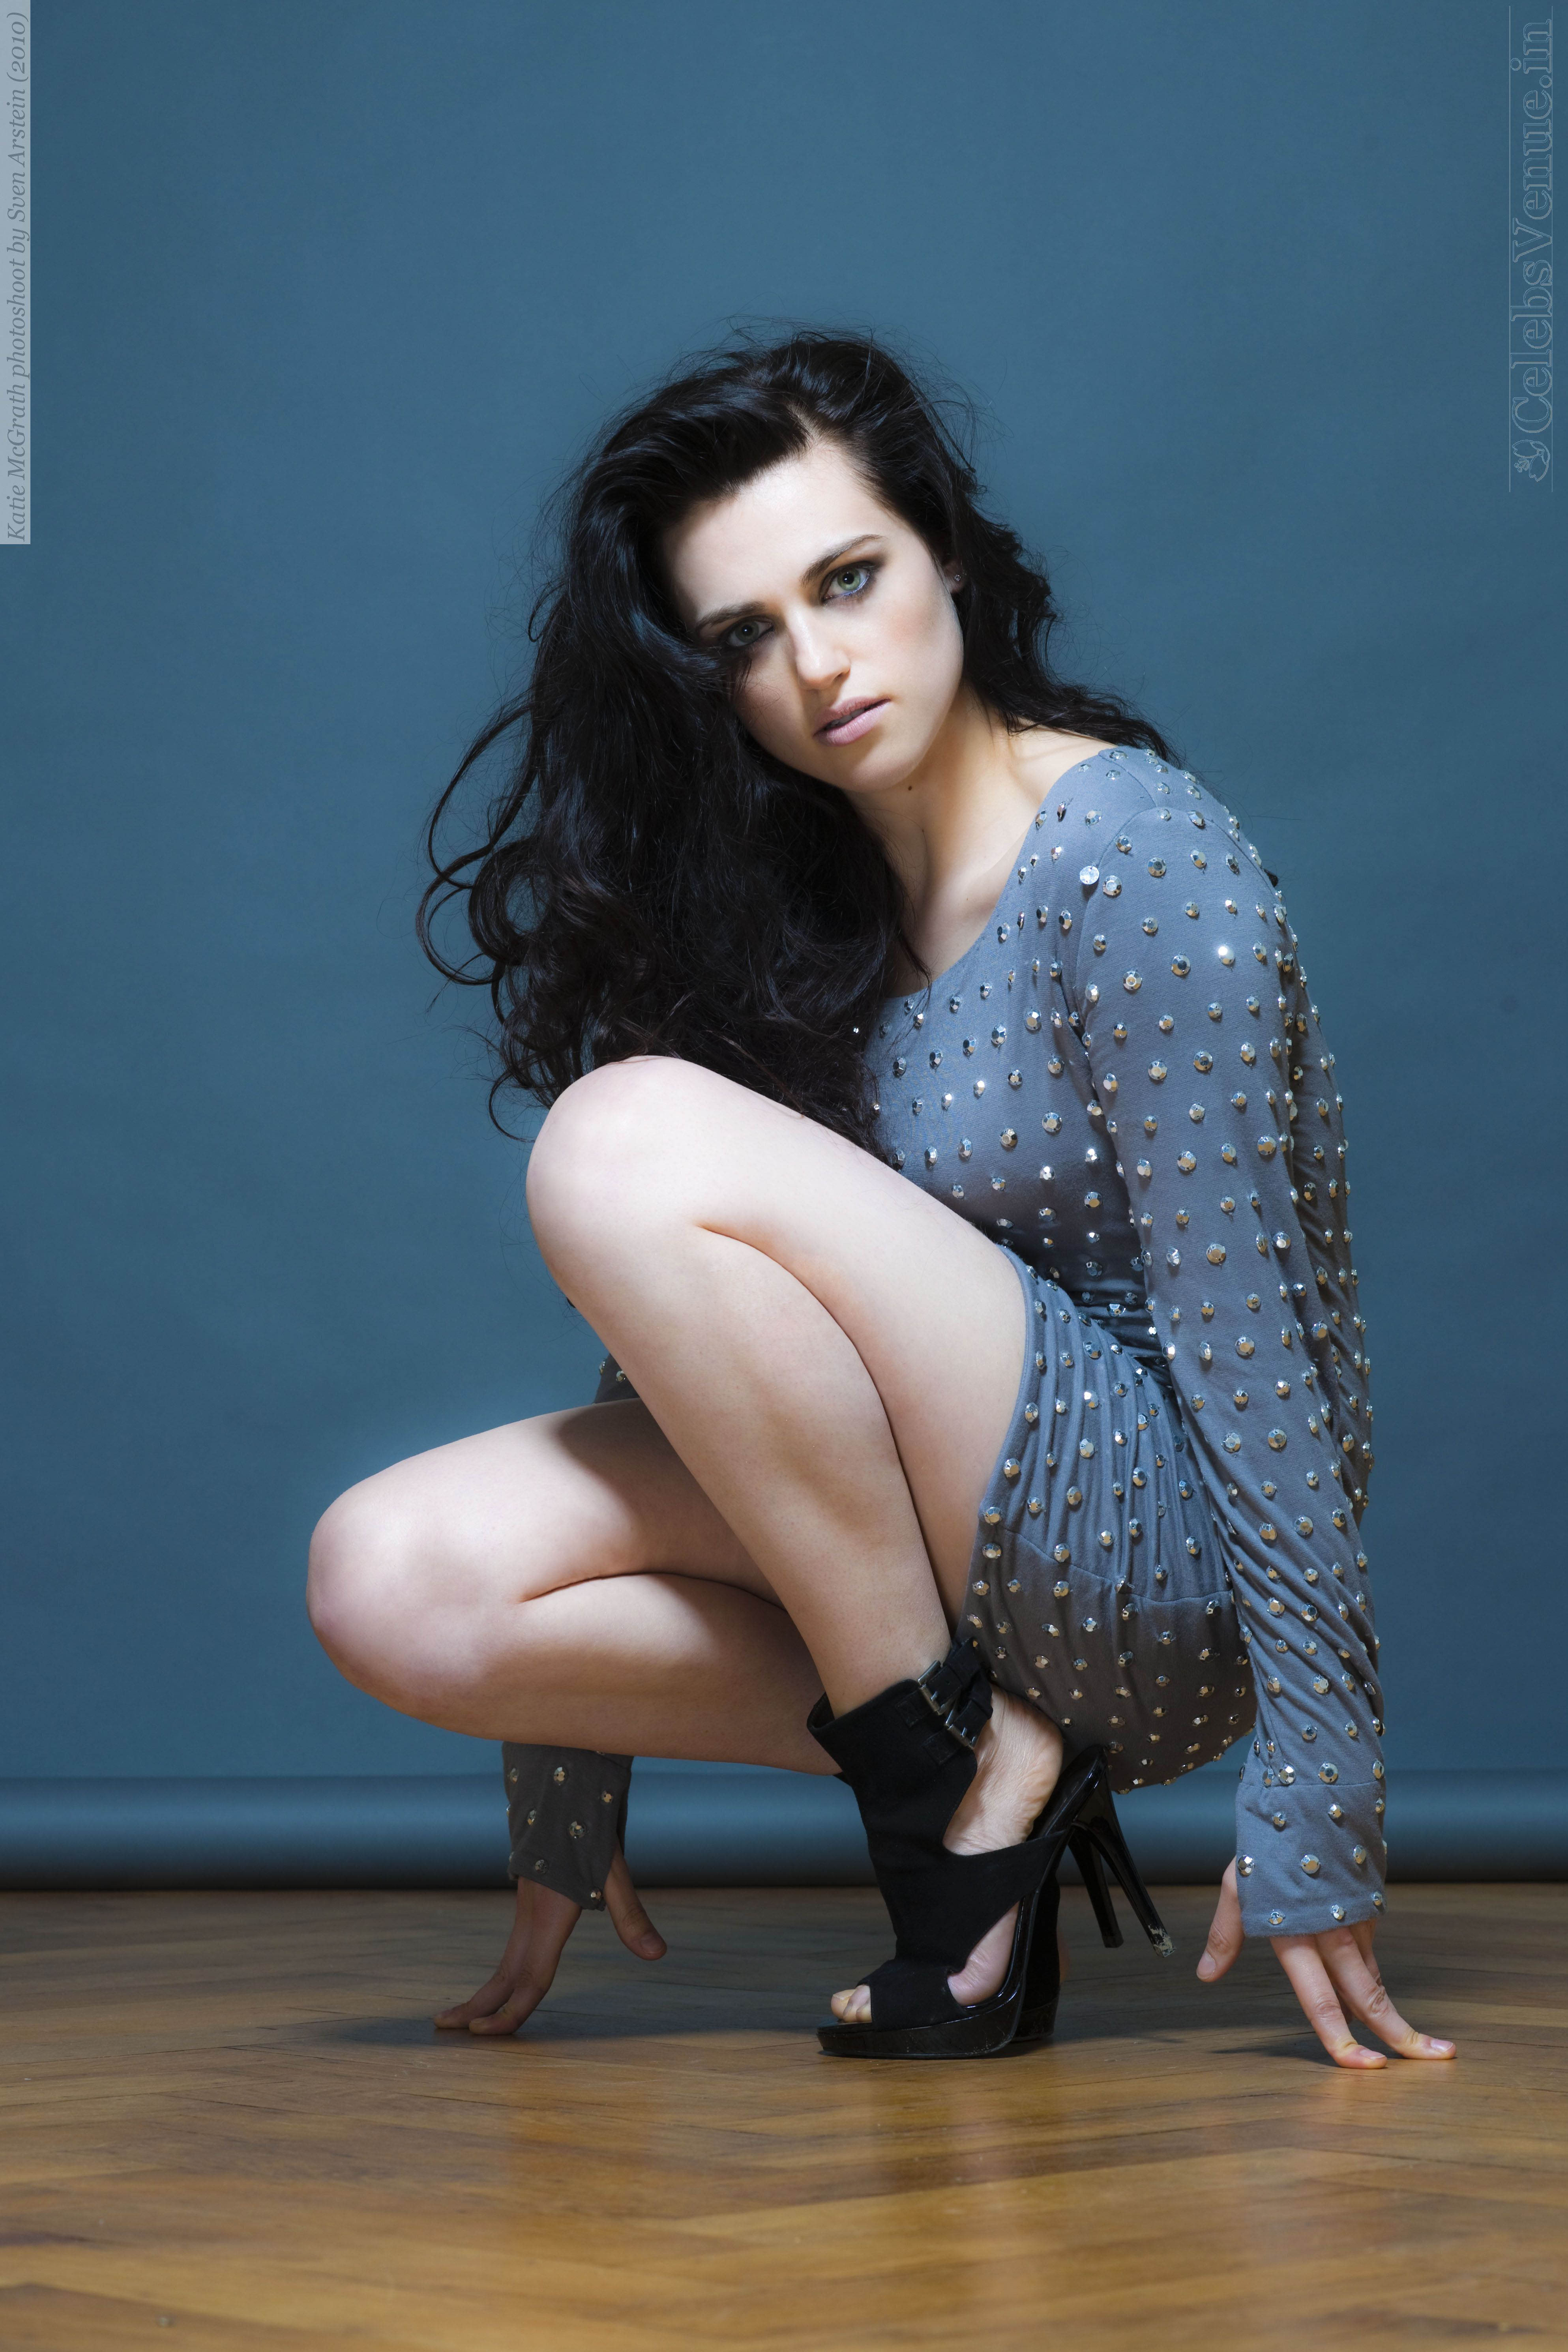 Katie Mcgrath Katie Mcgrath Pinterest Katie Mcgrath